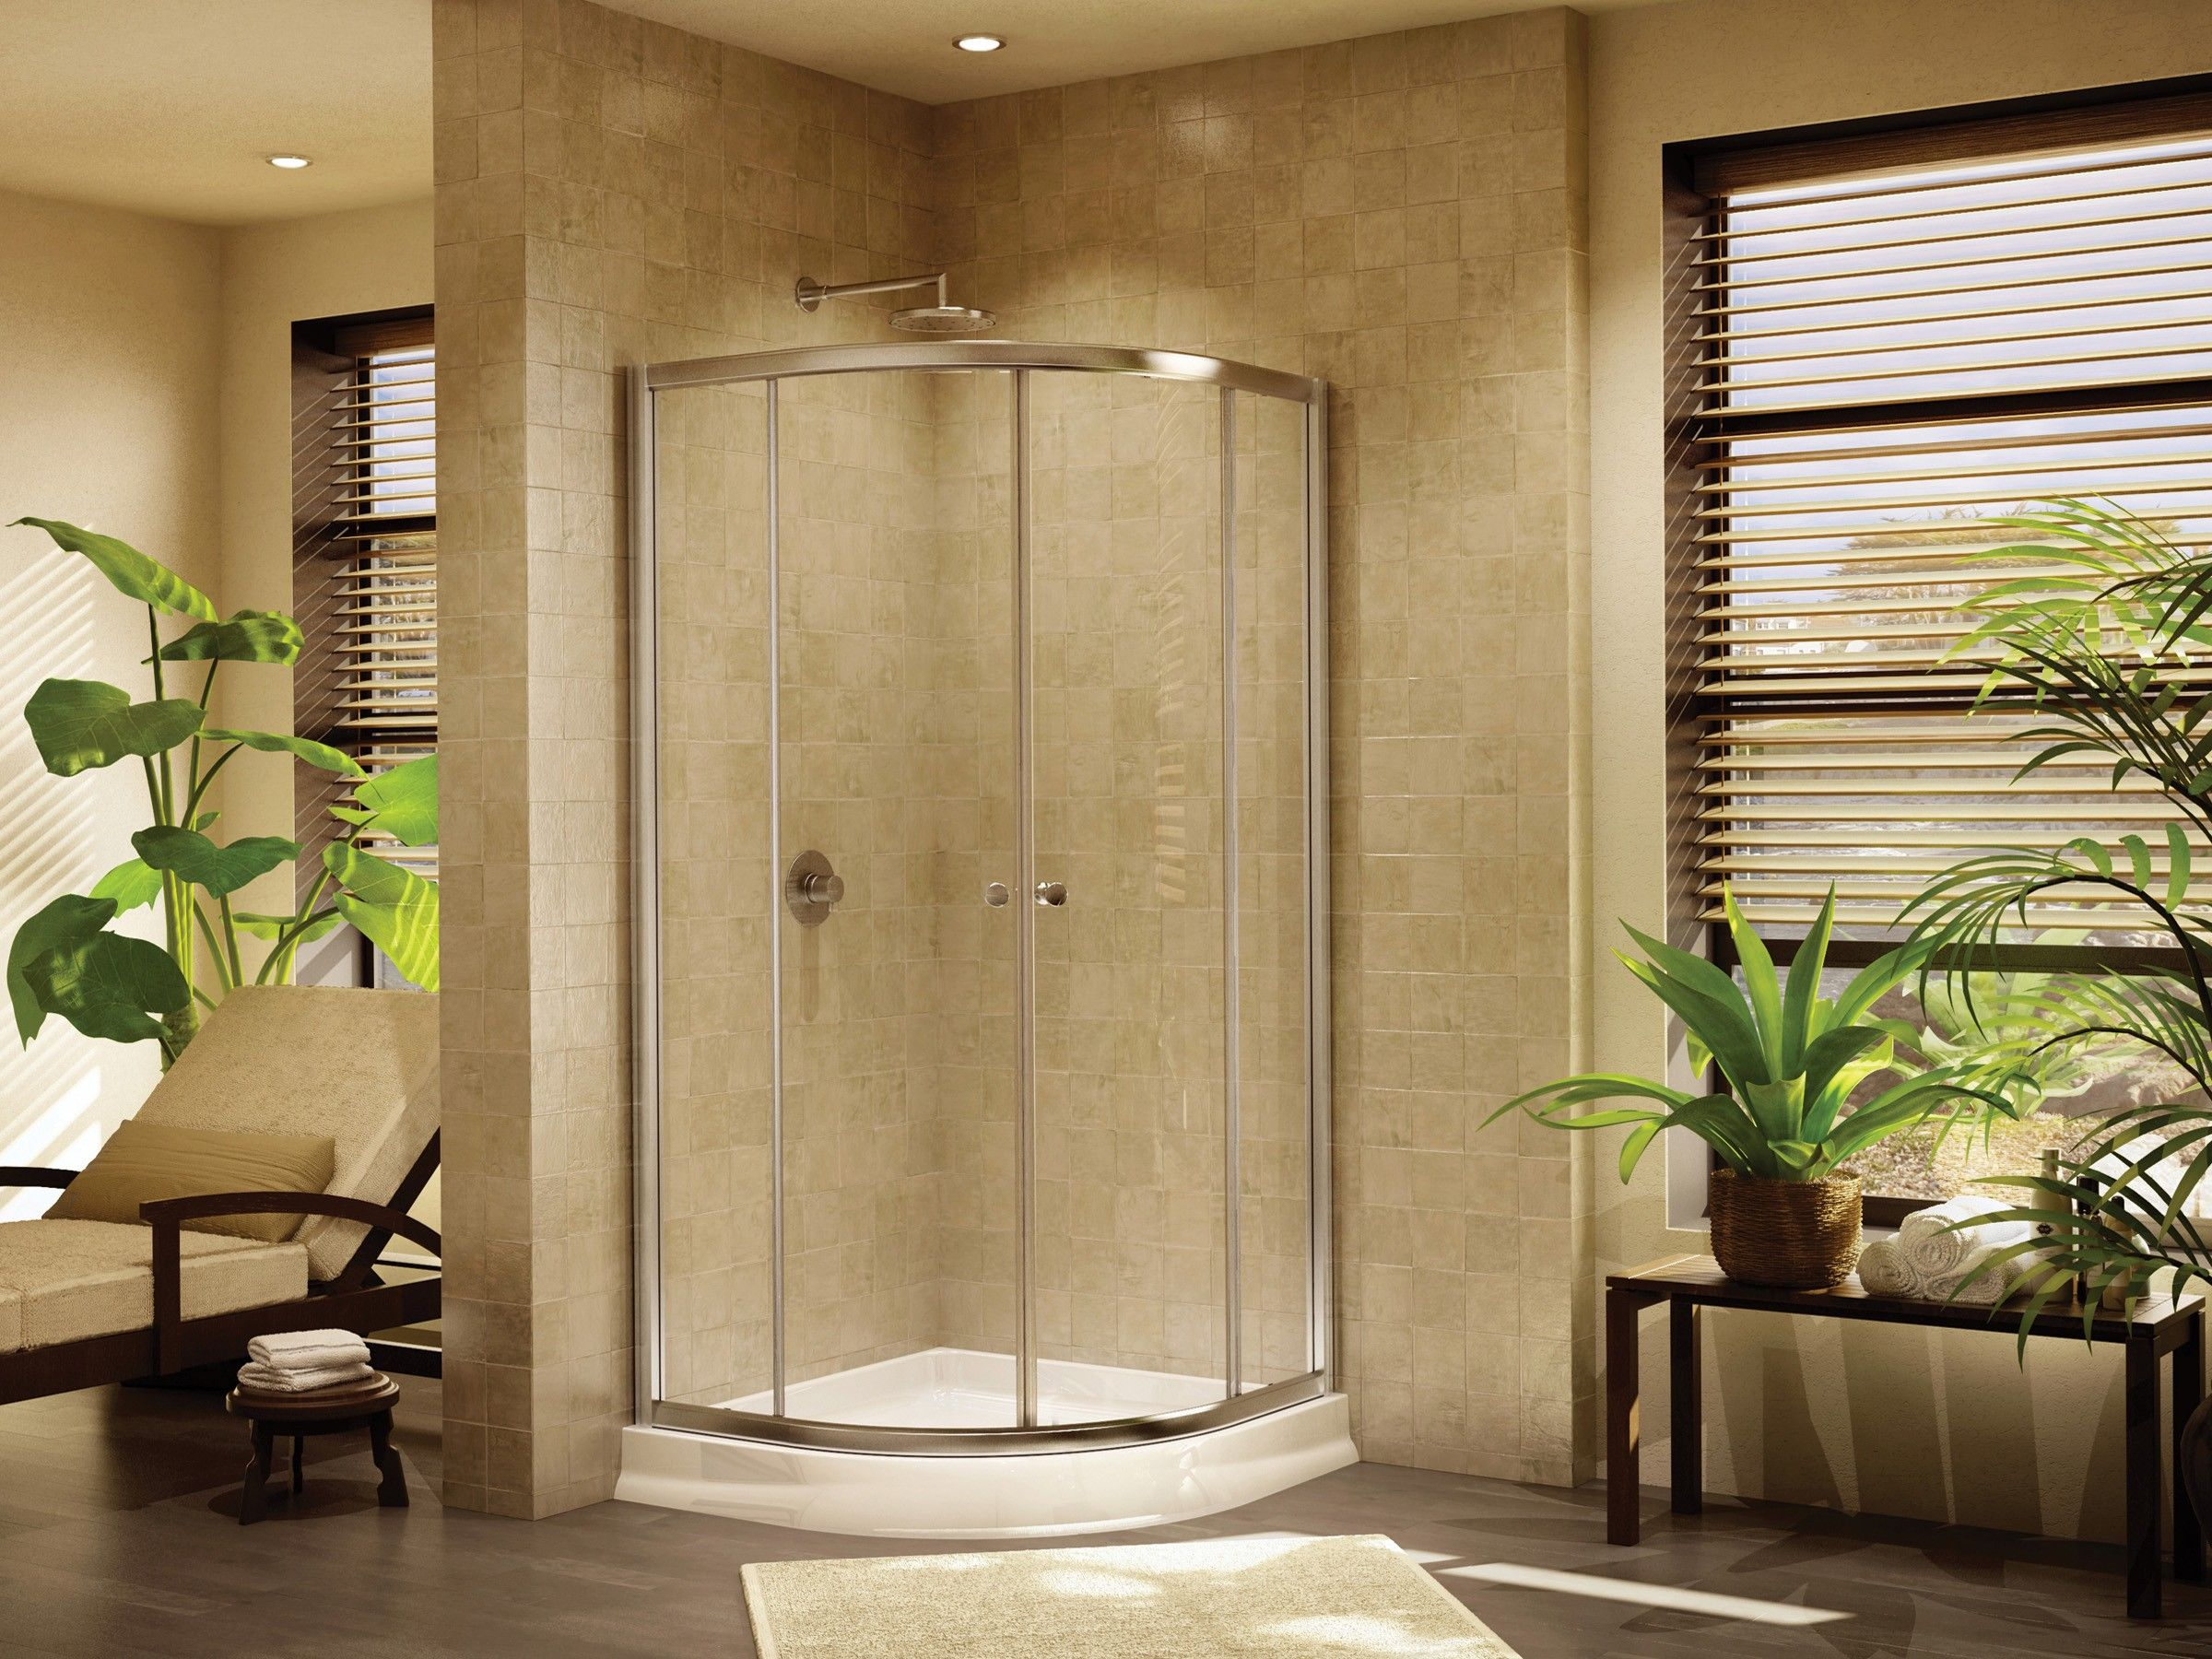 Fleurco banyo amalfi round 36 x 36 frameless curved glass sliding best price to buy fleurco banyo amalfi round x frameless curved glass sliding shower doors online from our exotic home expo website planetlyrics Gallery